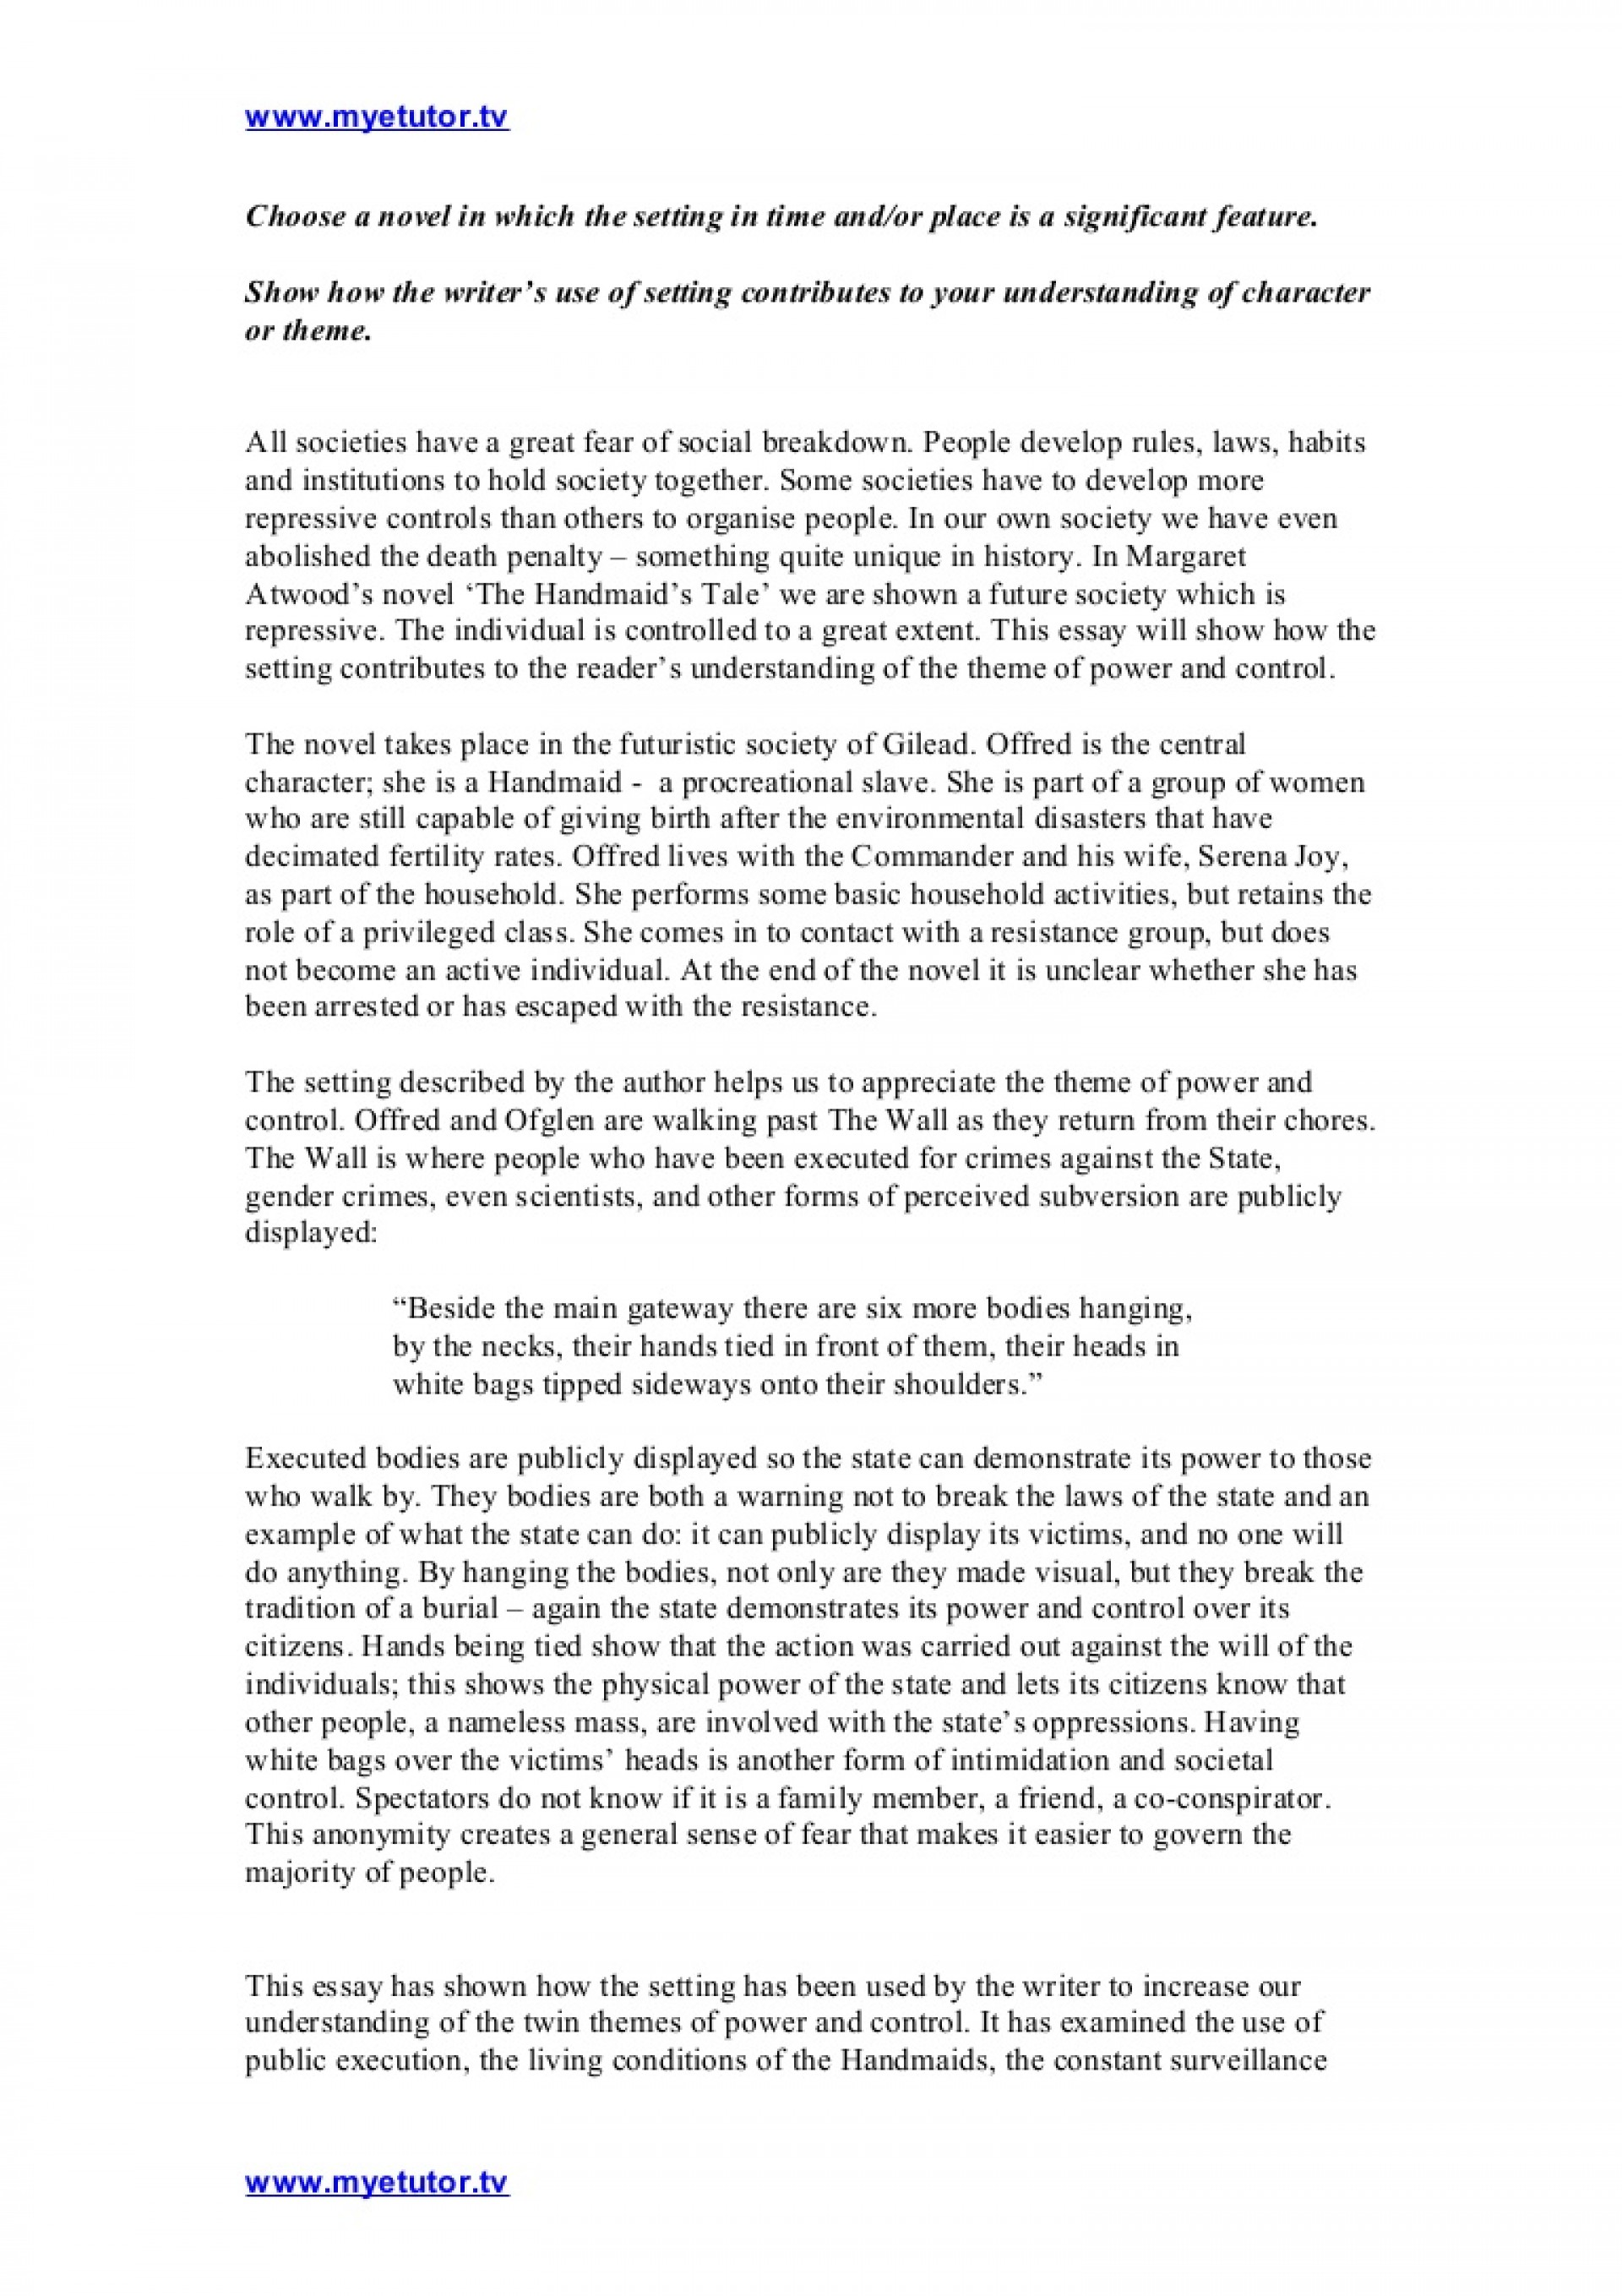 013 Fear Essay Example Thehandmaidstale Essayonsetting Phpapp02 Thumbnail Astounding Ideas In English Prompt 1920